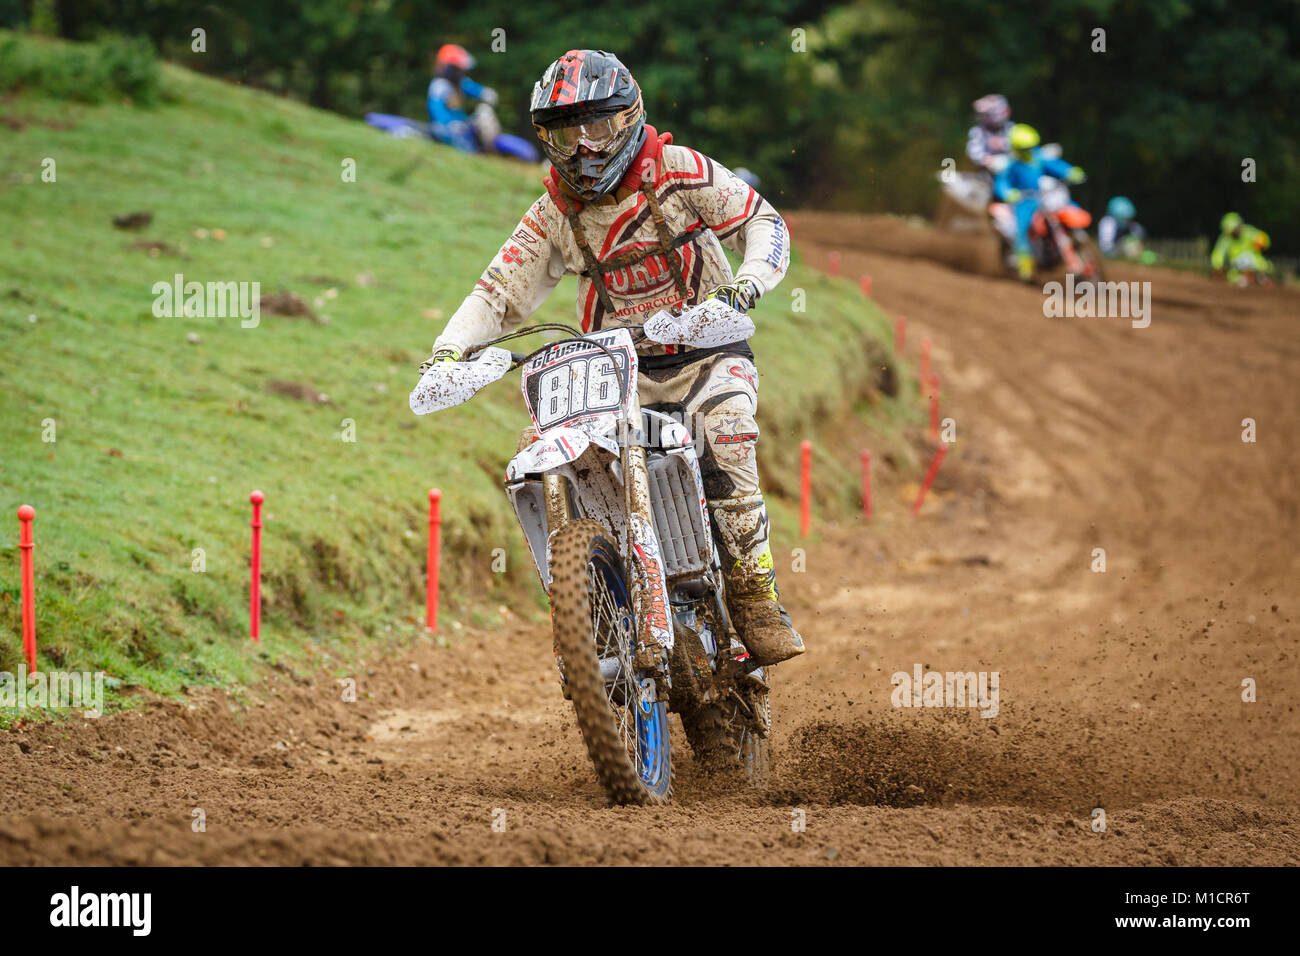 Gareth Cushion on the DRD / Tinklers Motorcycles Yamaha 250 at the NGR & ACU Eastern EVO Motocross Championships, Stock Photo